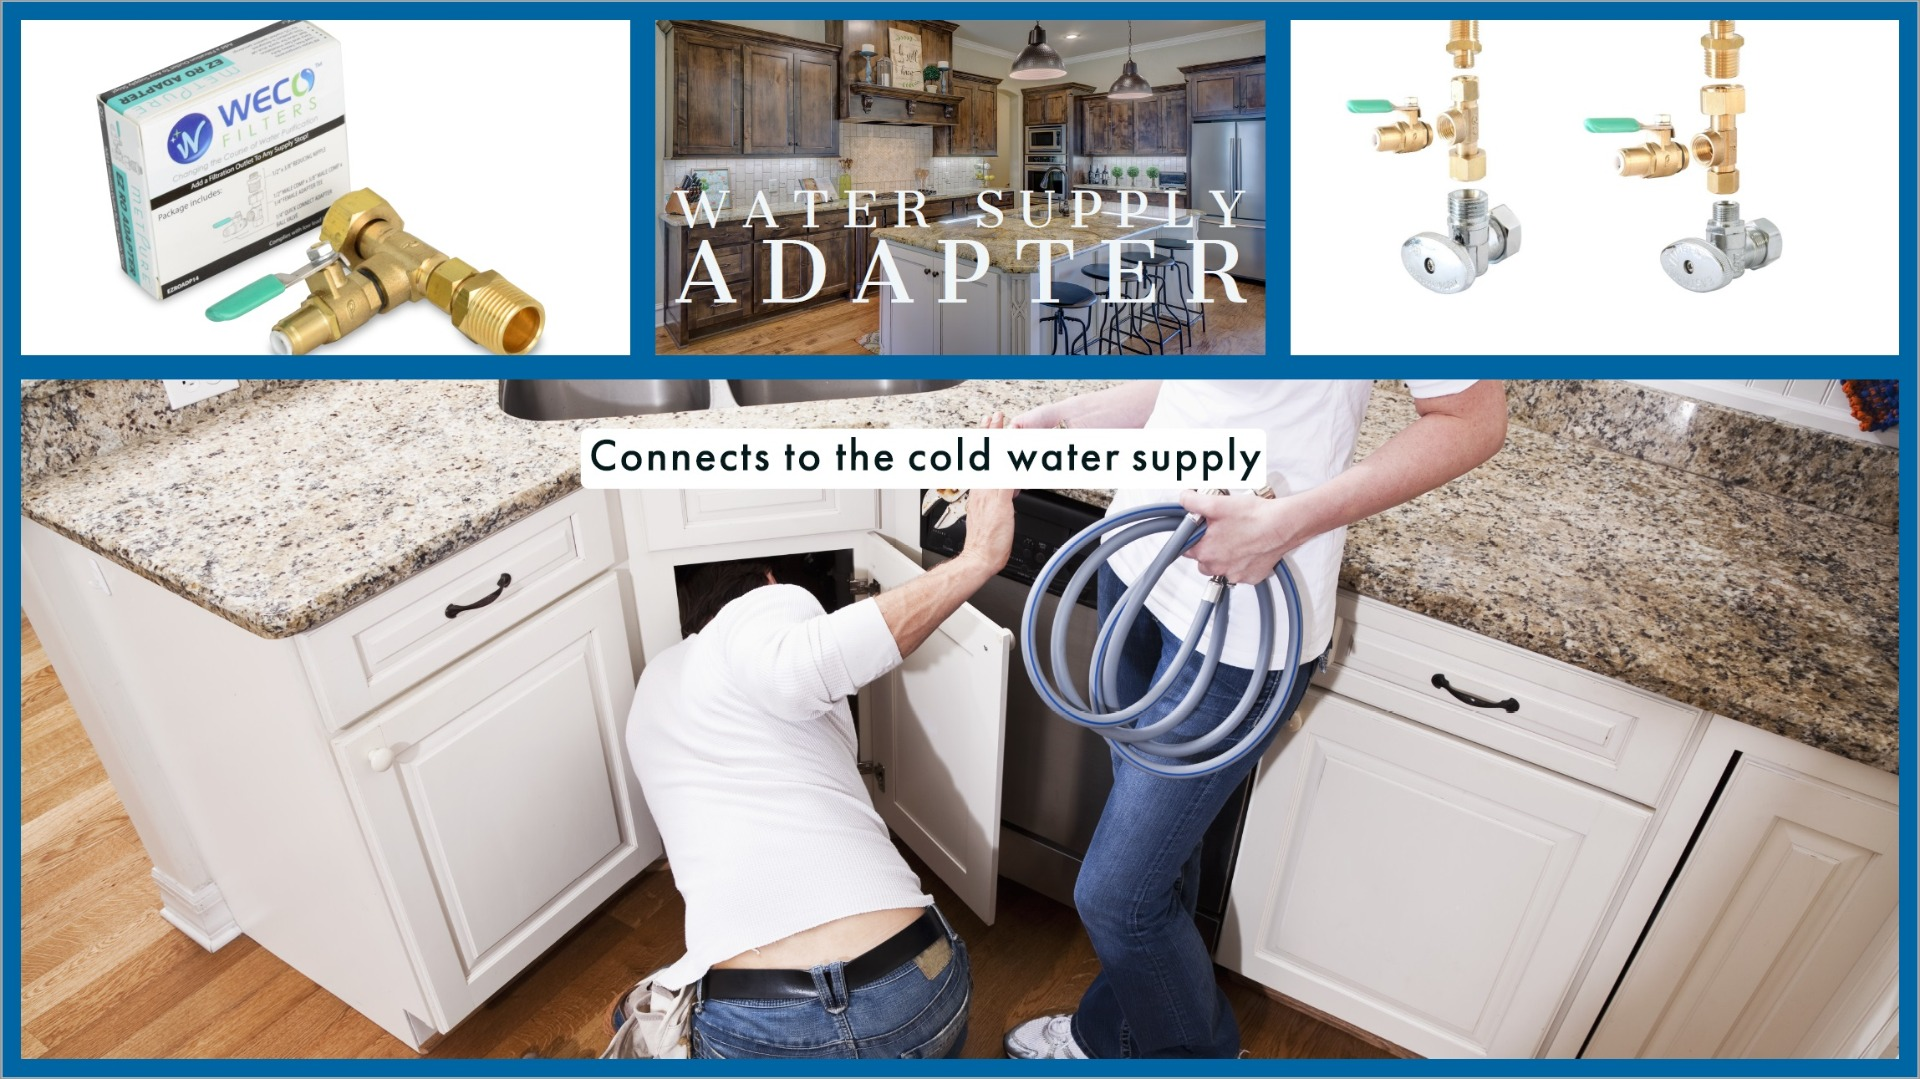 cold water supply adapter